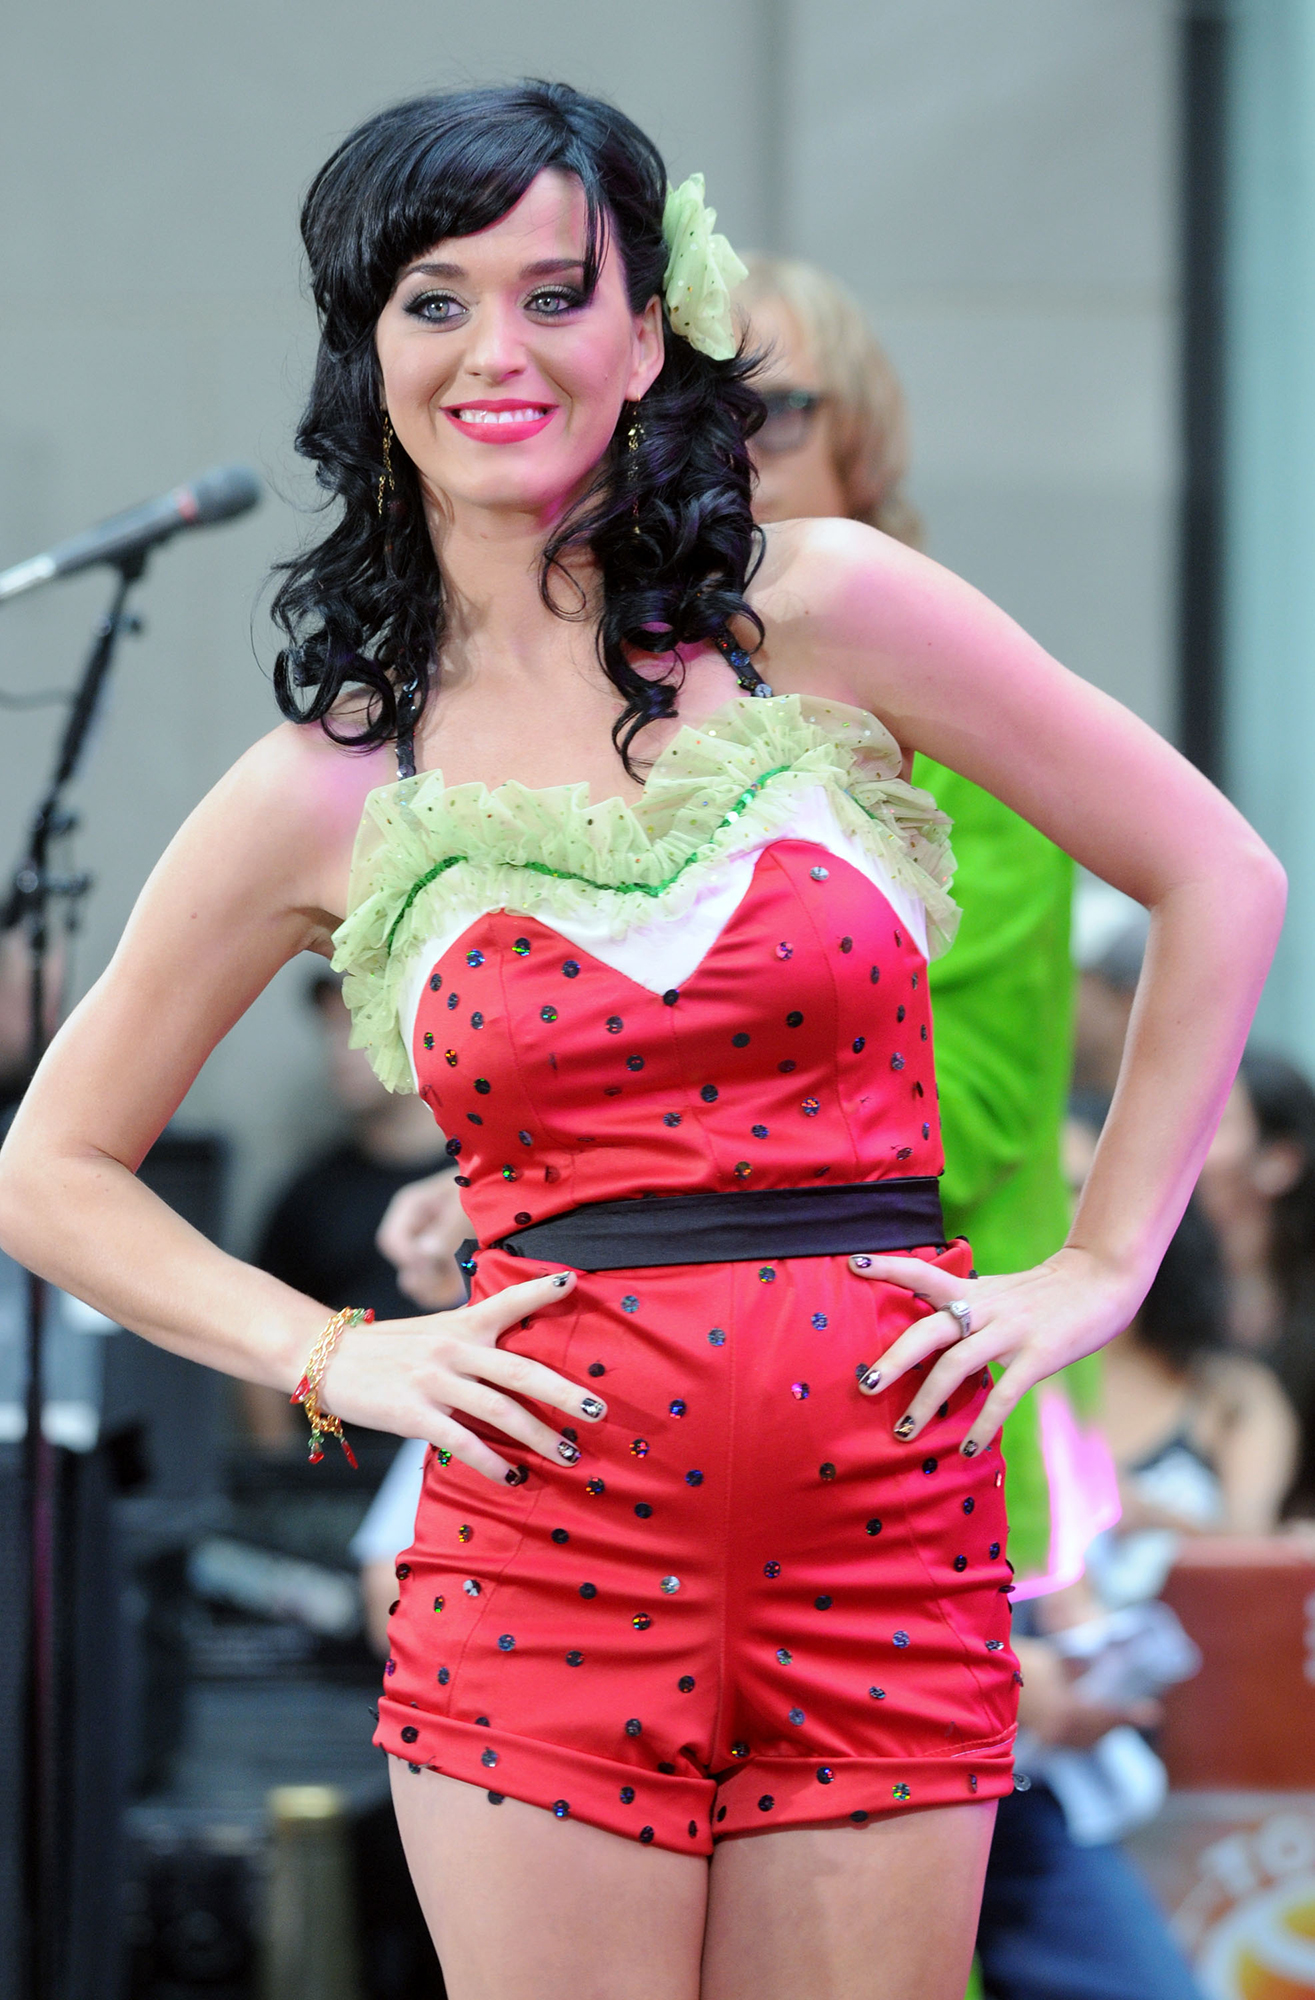 Katy Perry Dressed as Food - The award-winning singer took the stage at Rockefeller Plaza in New York City in 2008 dressed in a pink and green watermelon outfit complete with seeds and a matching hair accessory.